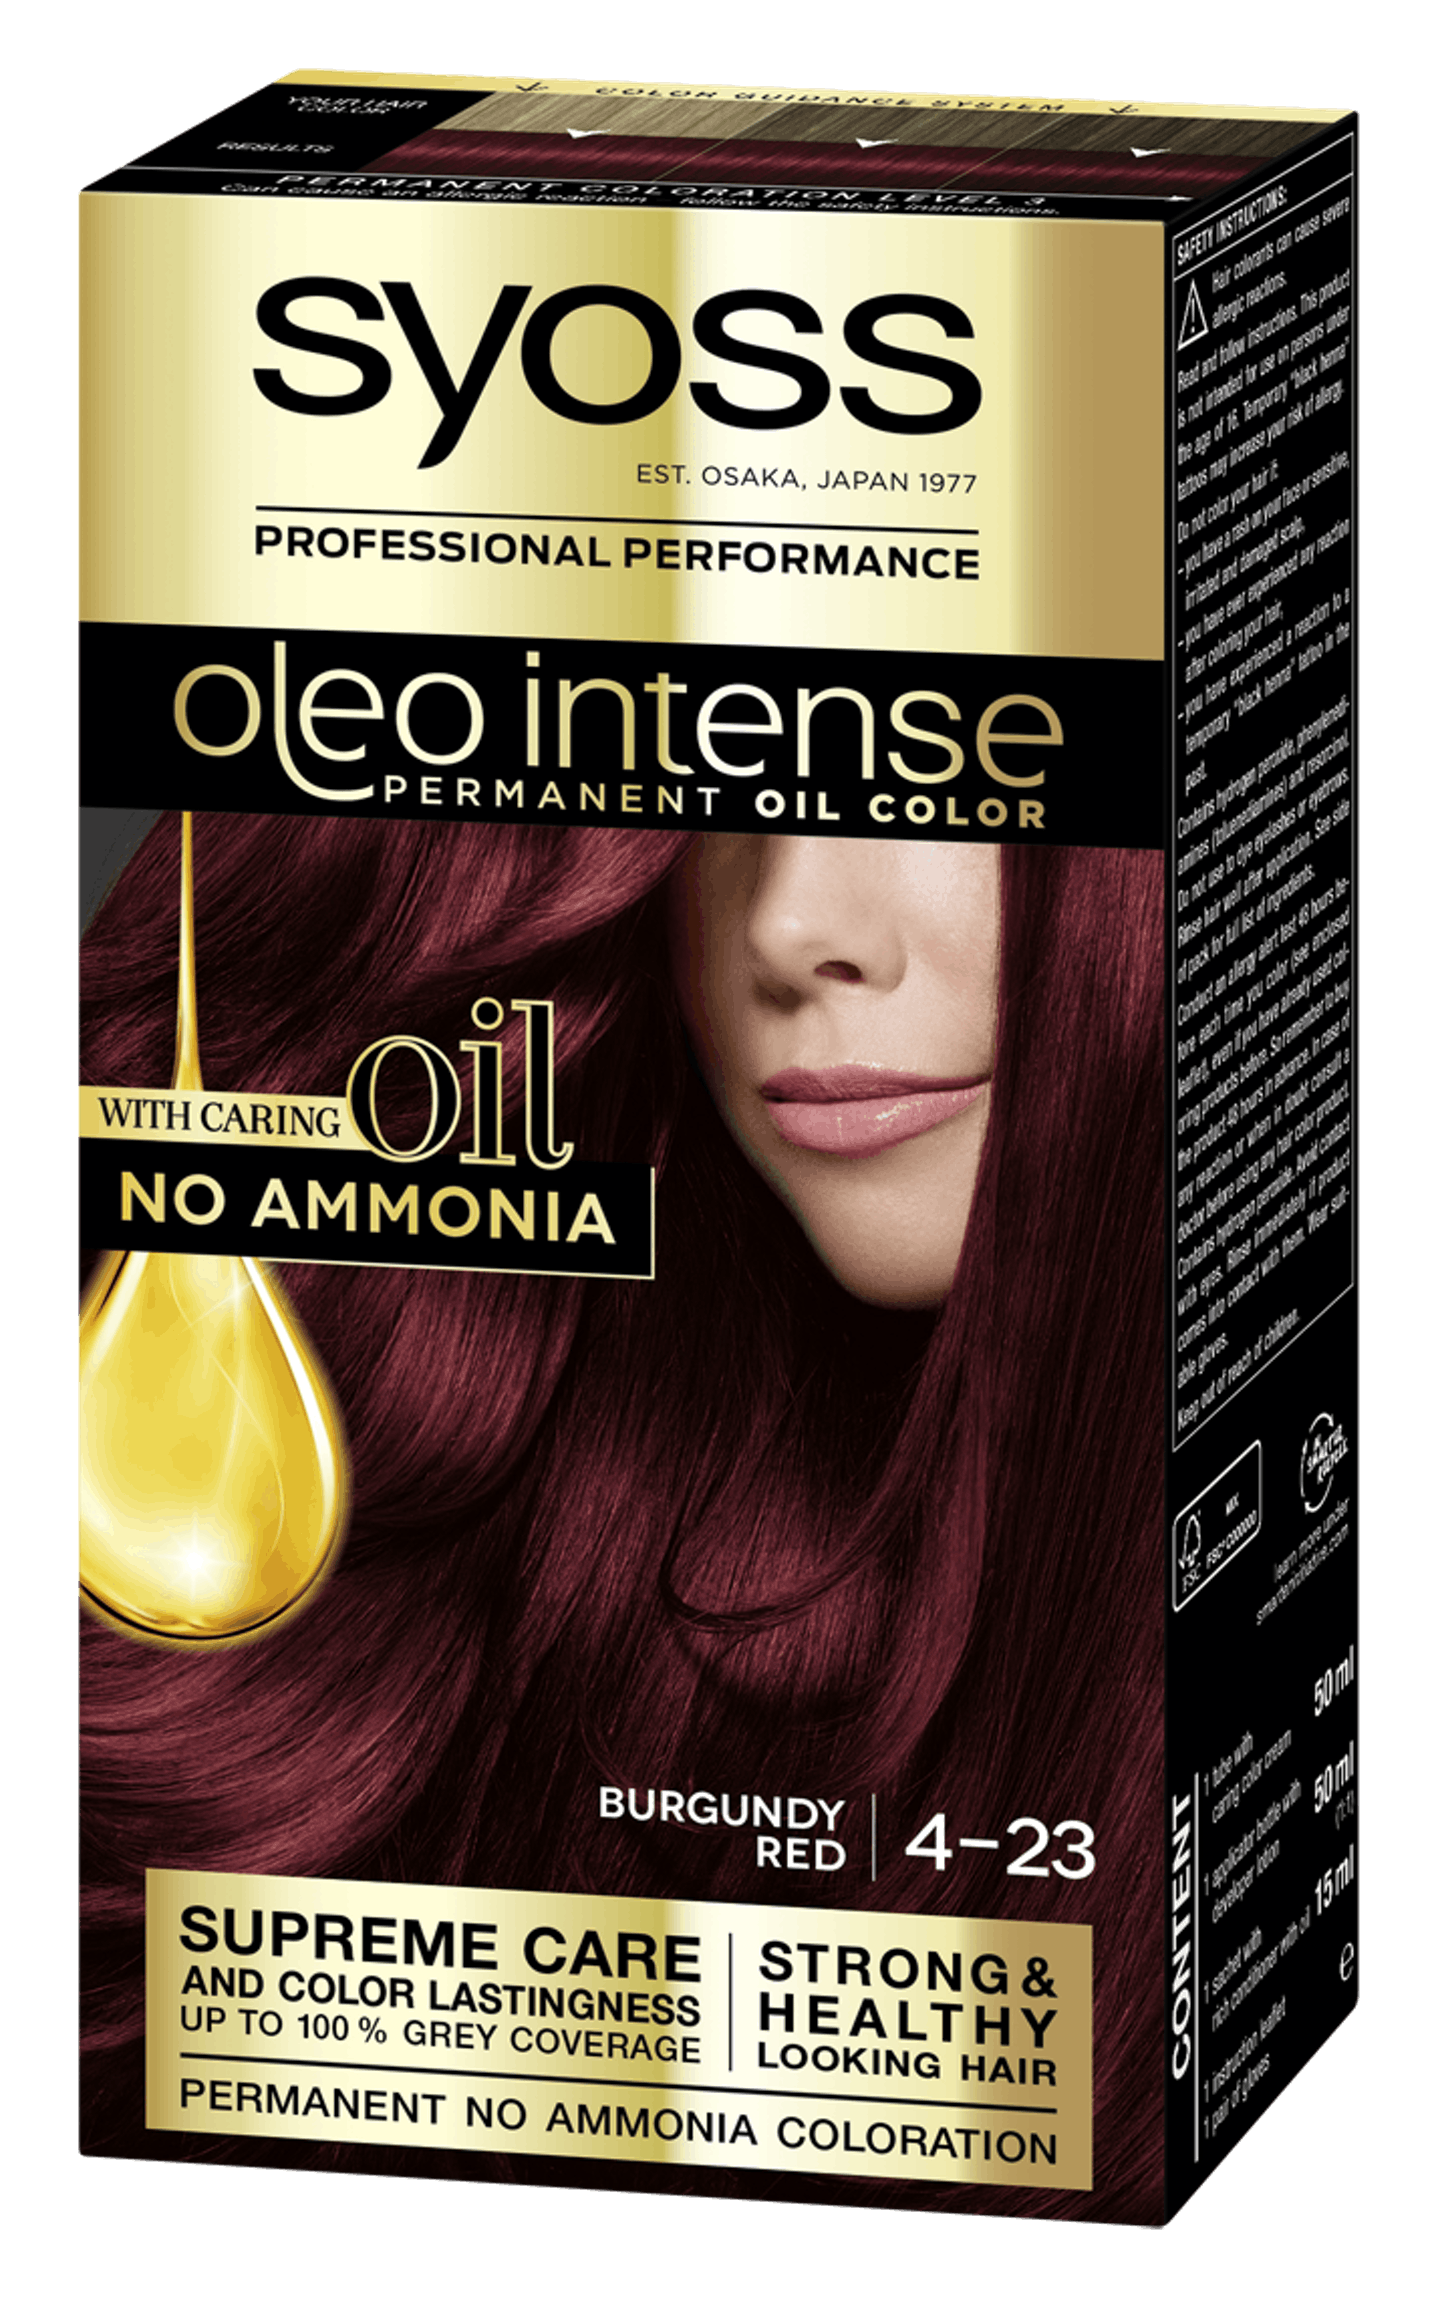 Syoss Oleo Intense Permanent Oil Color 4-23 Burgundy Red